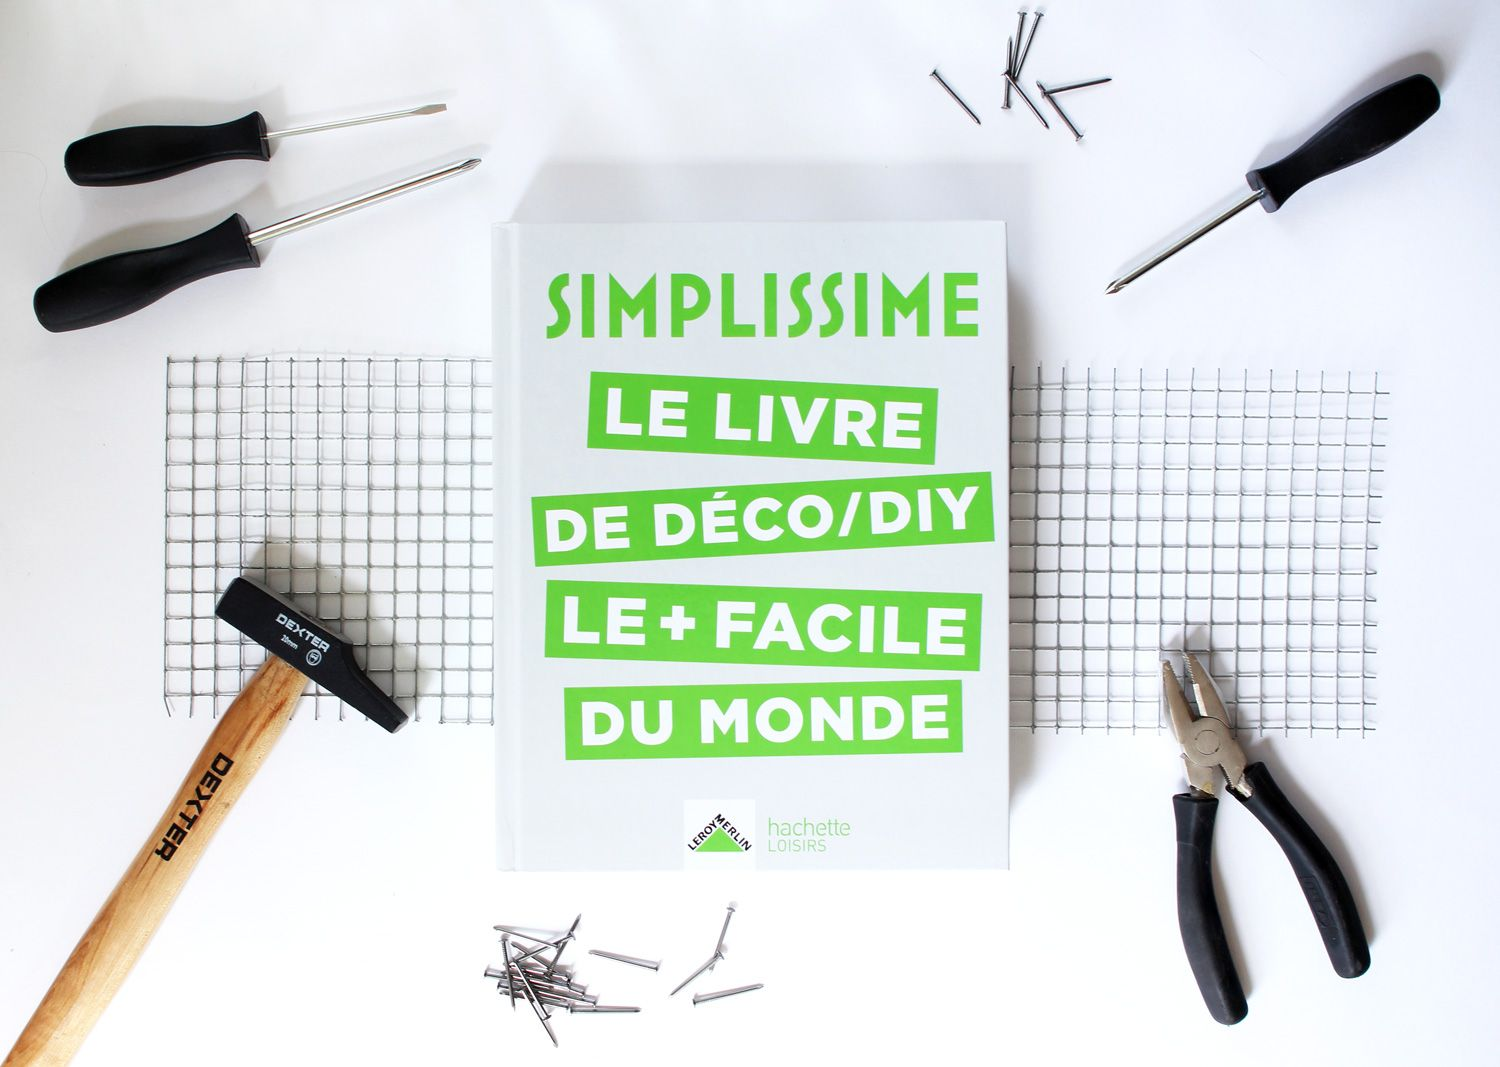 Simplissime Le Livre De Deco Le Simple Du Monde Vert Cerise Blog Diy Do It Yourself Lifestyle Et Creatif Deco Diy Faire Soi Meme